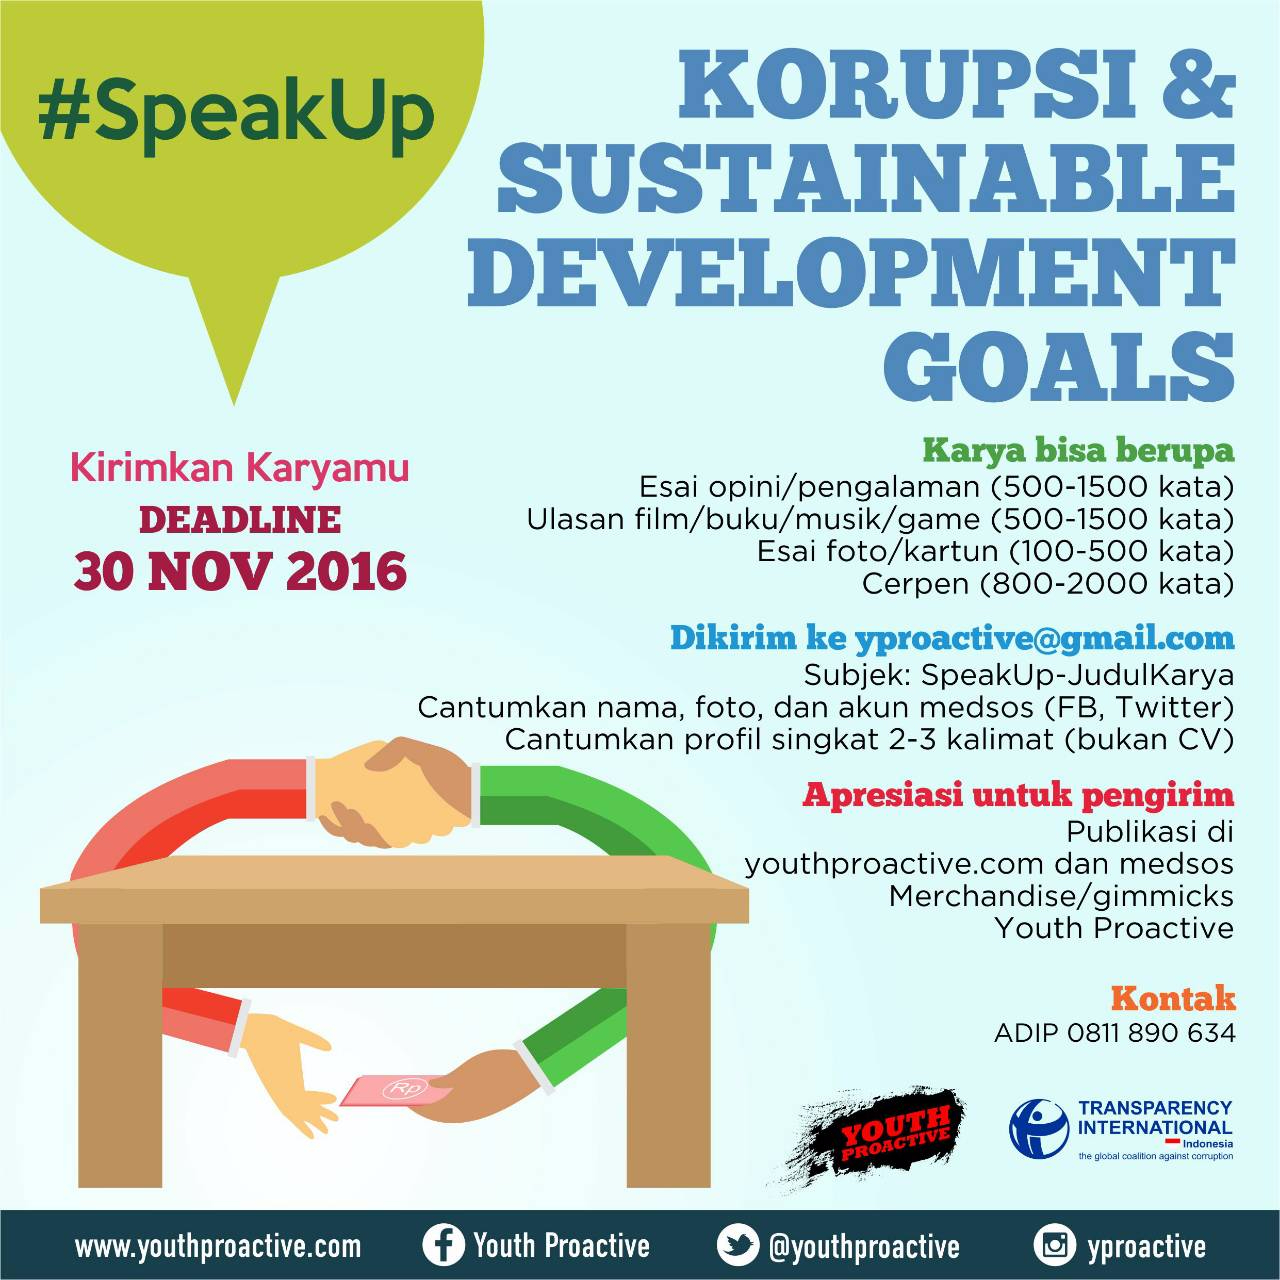 #SpeakUp: Kirimkan Karyamu!